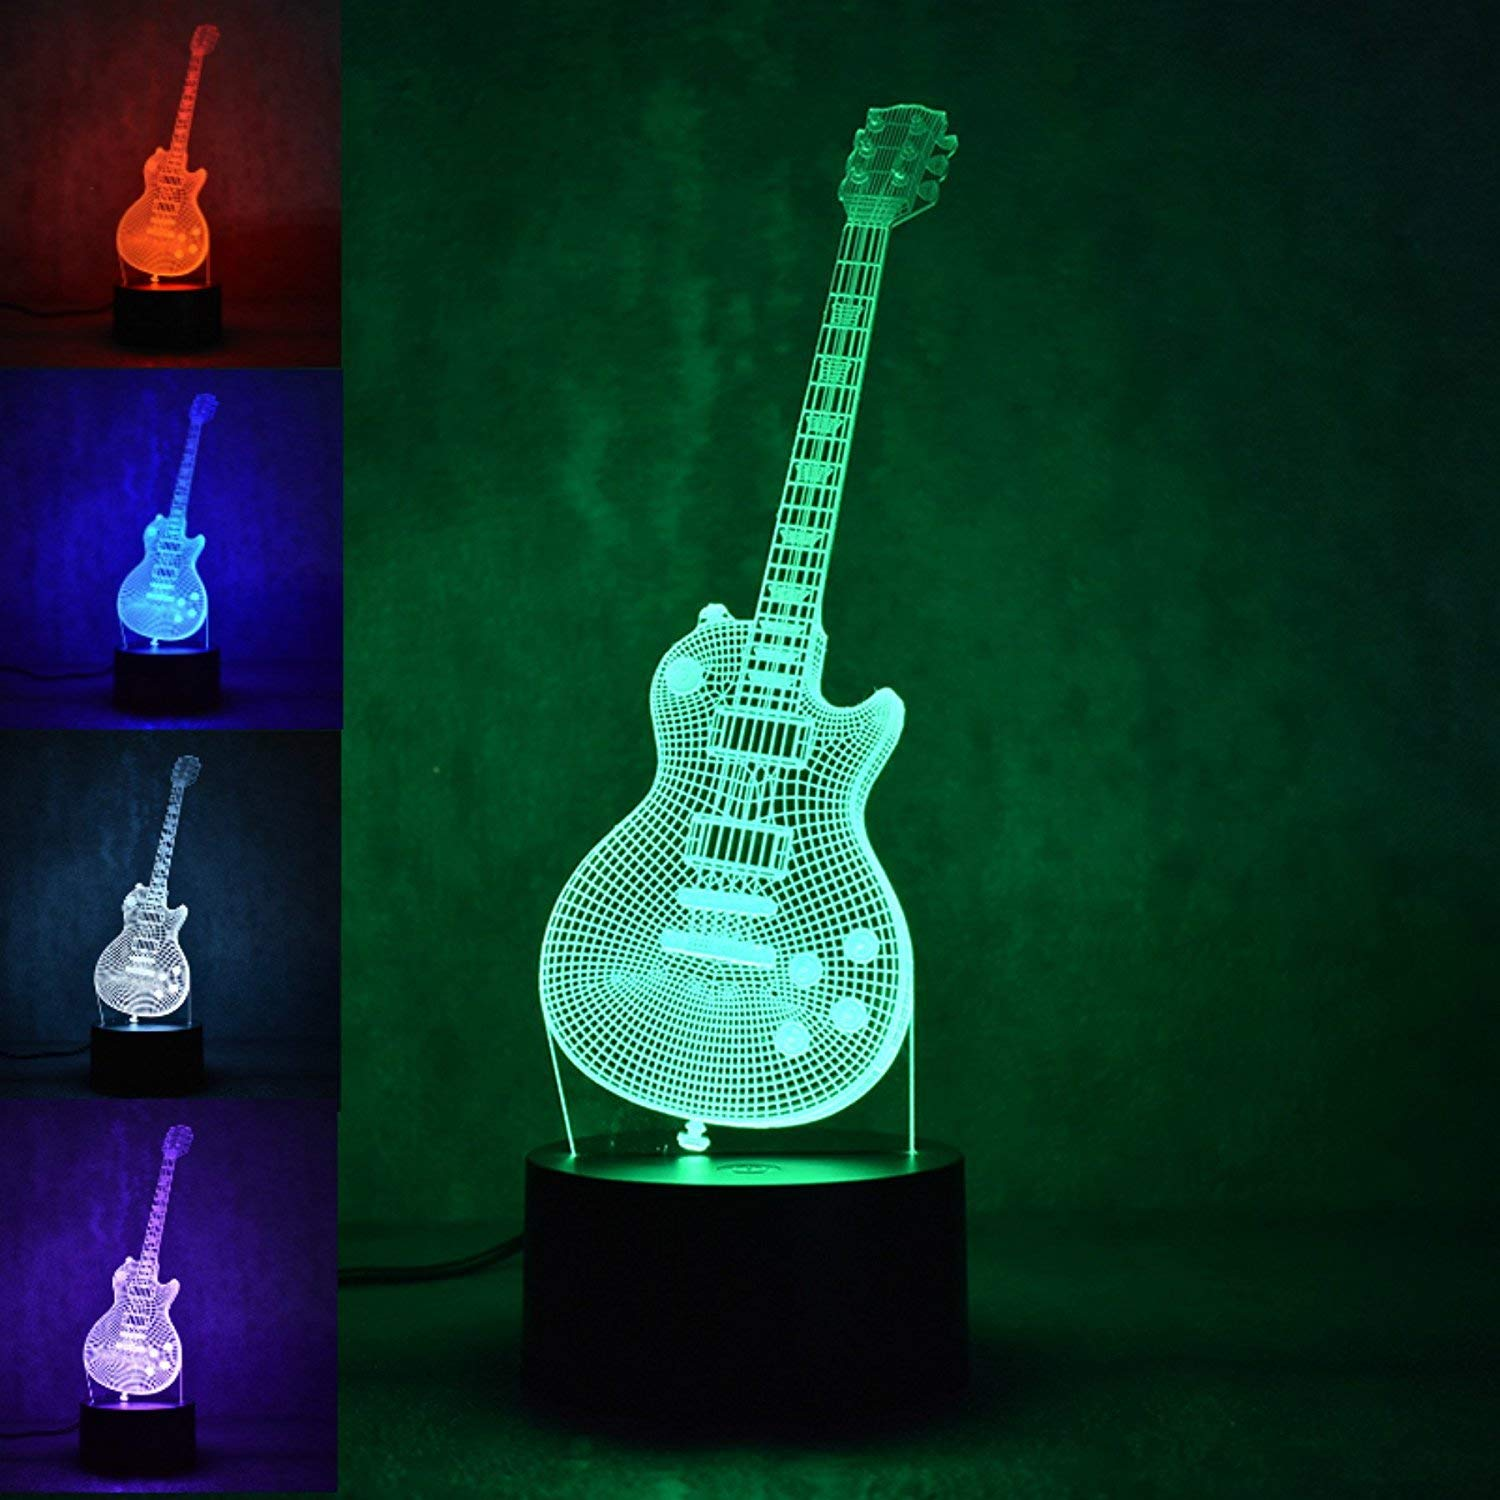 3D Music Electric Bass Guitar Night Light Lamp USB Touch Switch Decor Table Desk Optical Illusion Lamps 7 Color Changing Lights LED Table Lamp Xmas Home Love Brithday Children Kids Decor Toy Gift by MOLLY HIESON